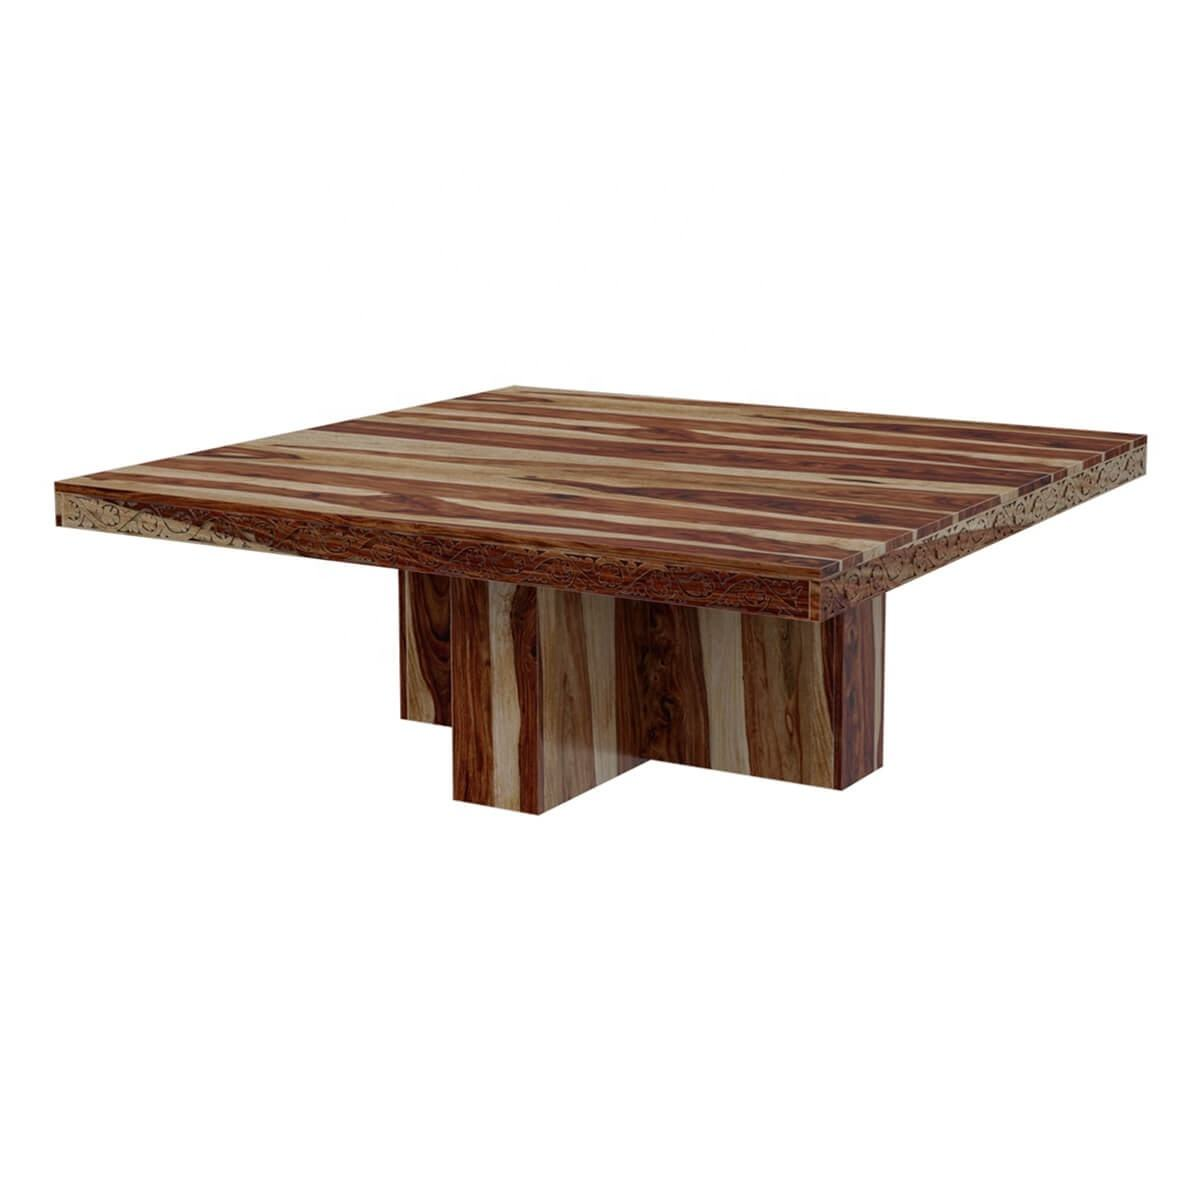 Solid Wood Rustic Large Square Dining Room Table Unique wooden legs